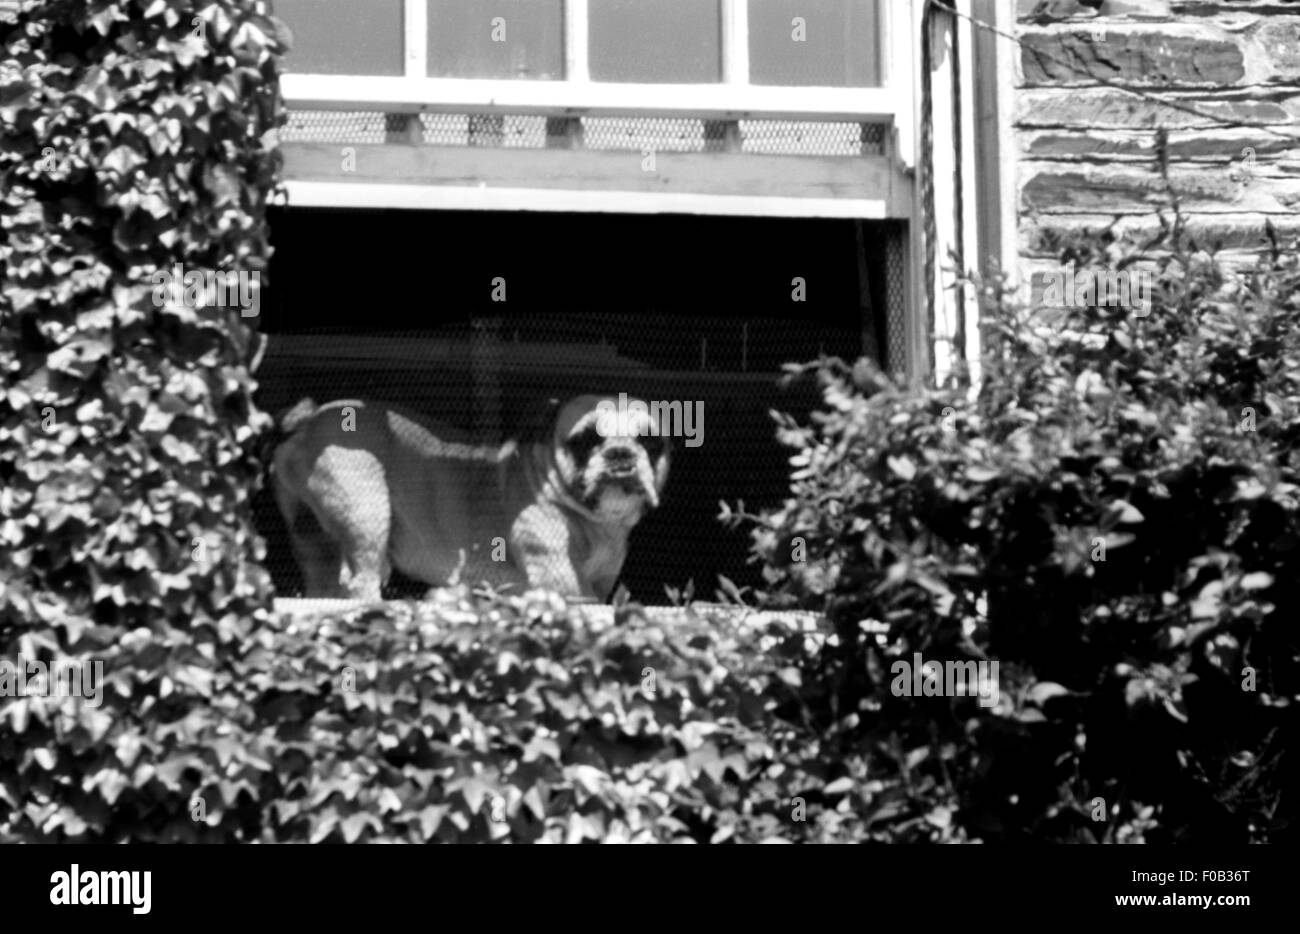 A view from below of a Bulldog on a window ledge of a house. Ivy is growing on the building. - Stock Image